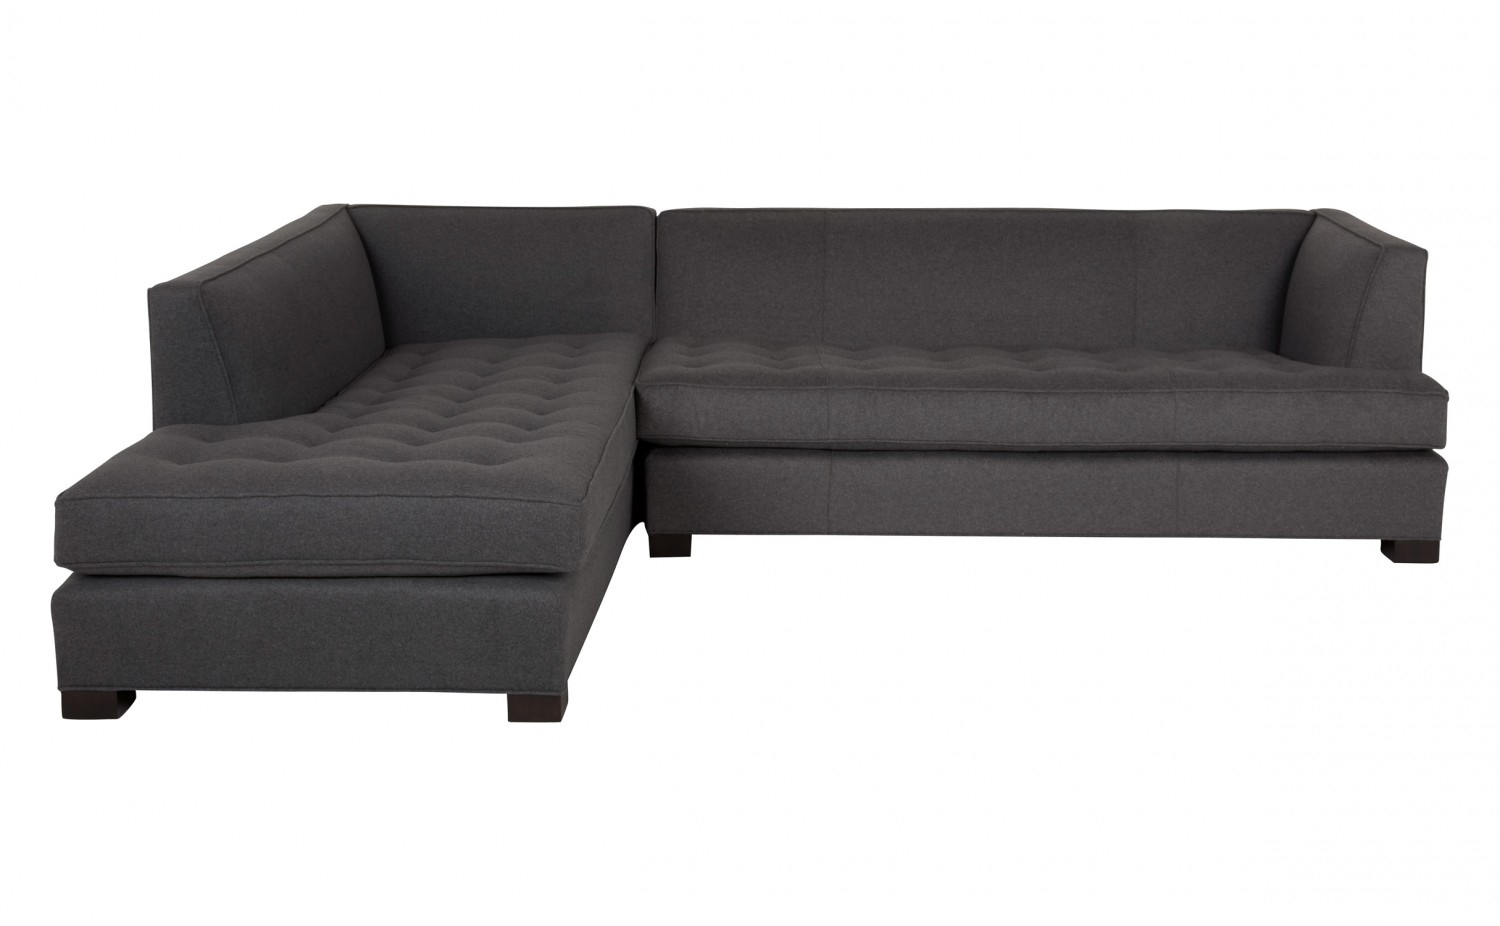 Jordan Sectional [Custom] | Jayson Home with regard to Jordans Sectional Sofas